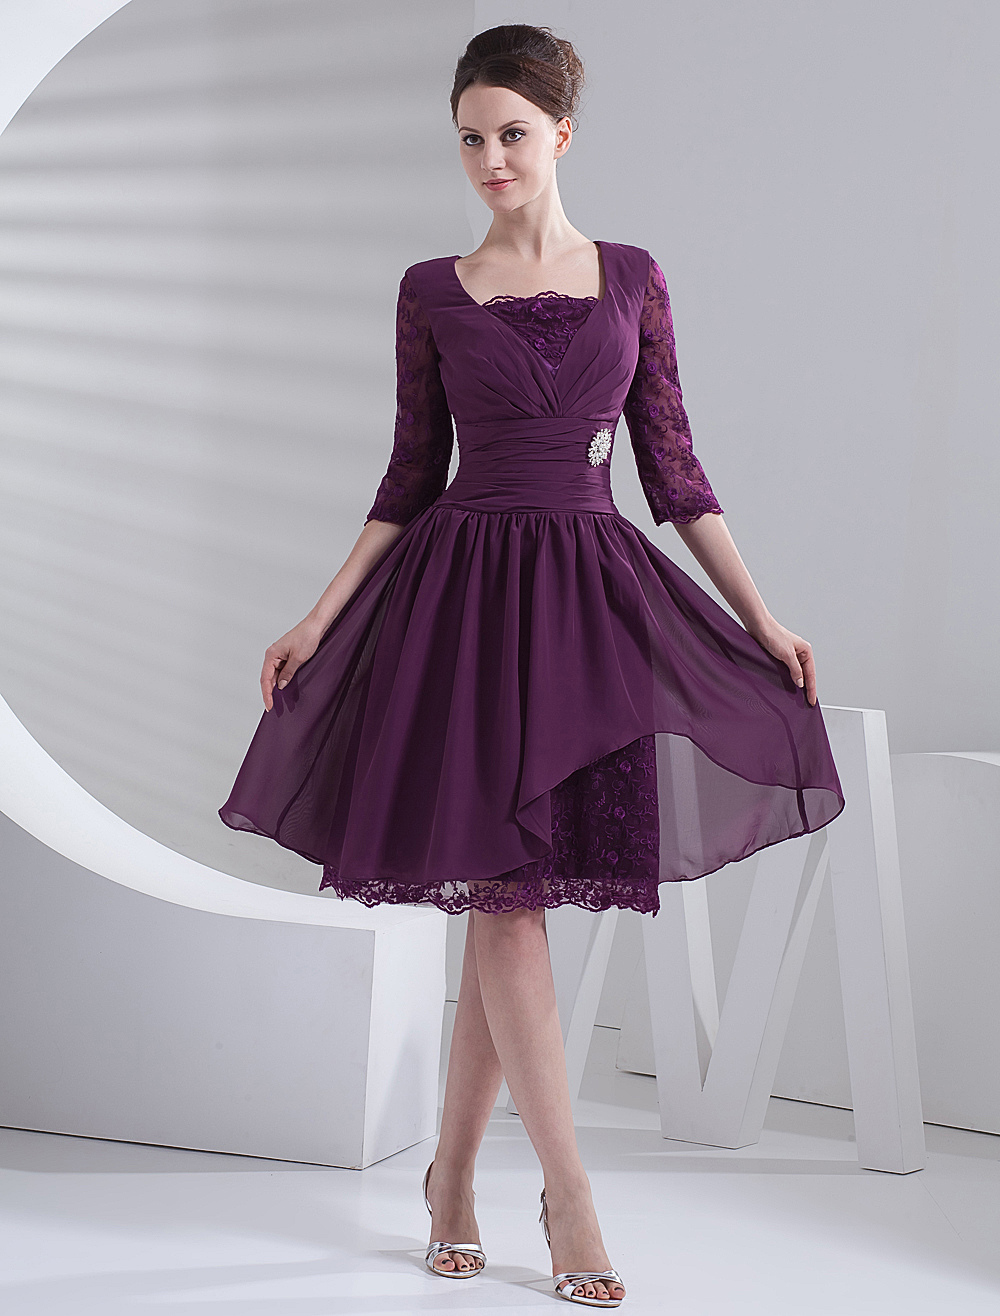 Wedding Guest Dresses Purple Plum Short Mother Dresses Lace Half Sleeve Pleated Chiffon Cocktail Dress Wedding Guest Dress